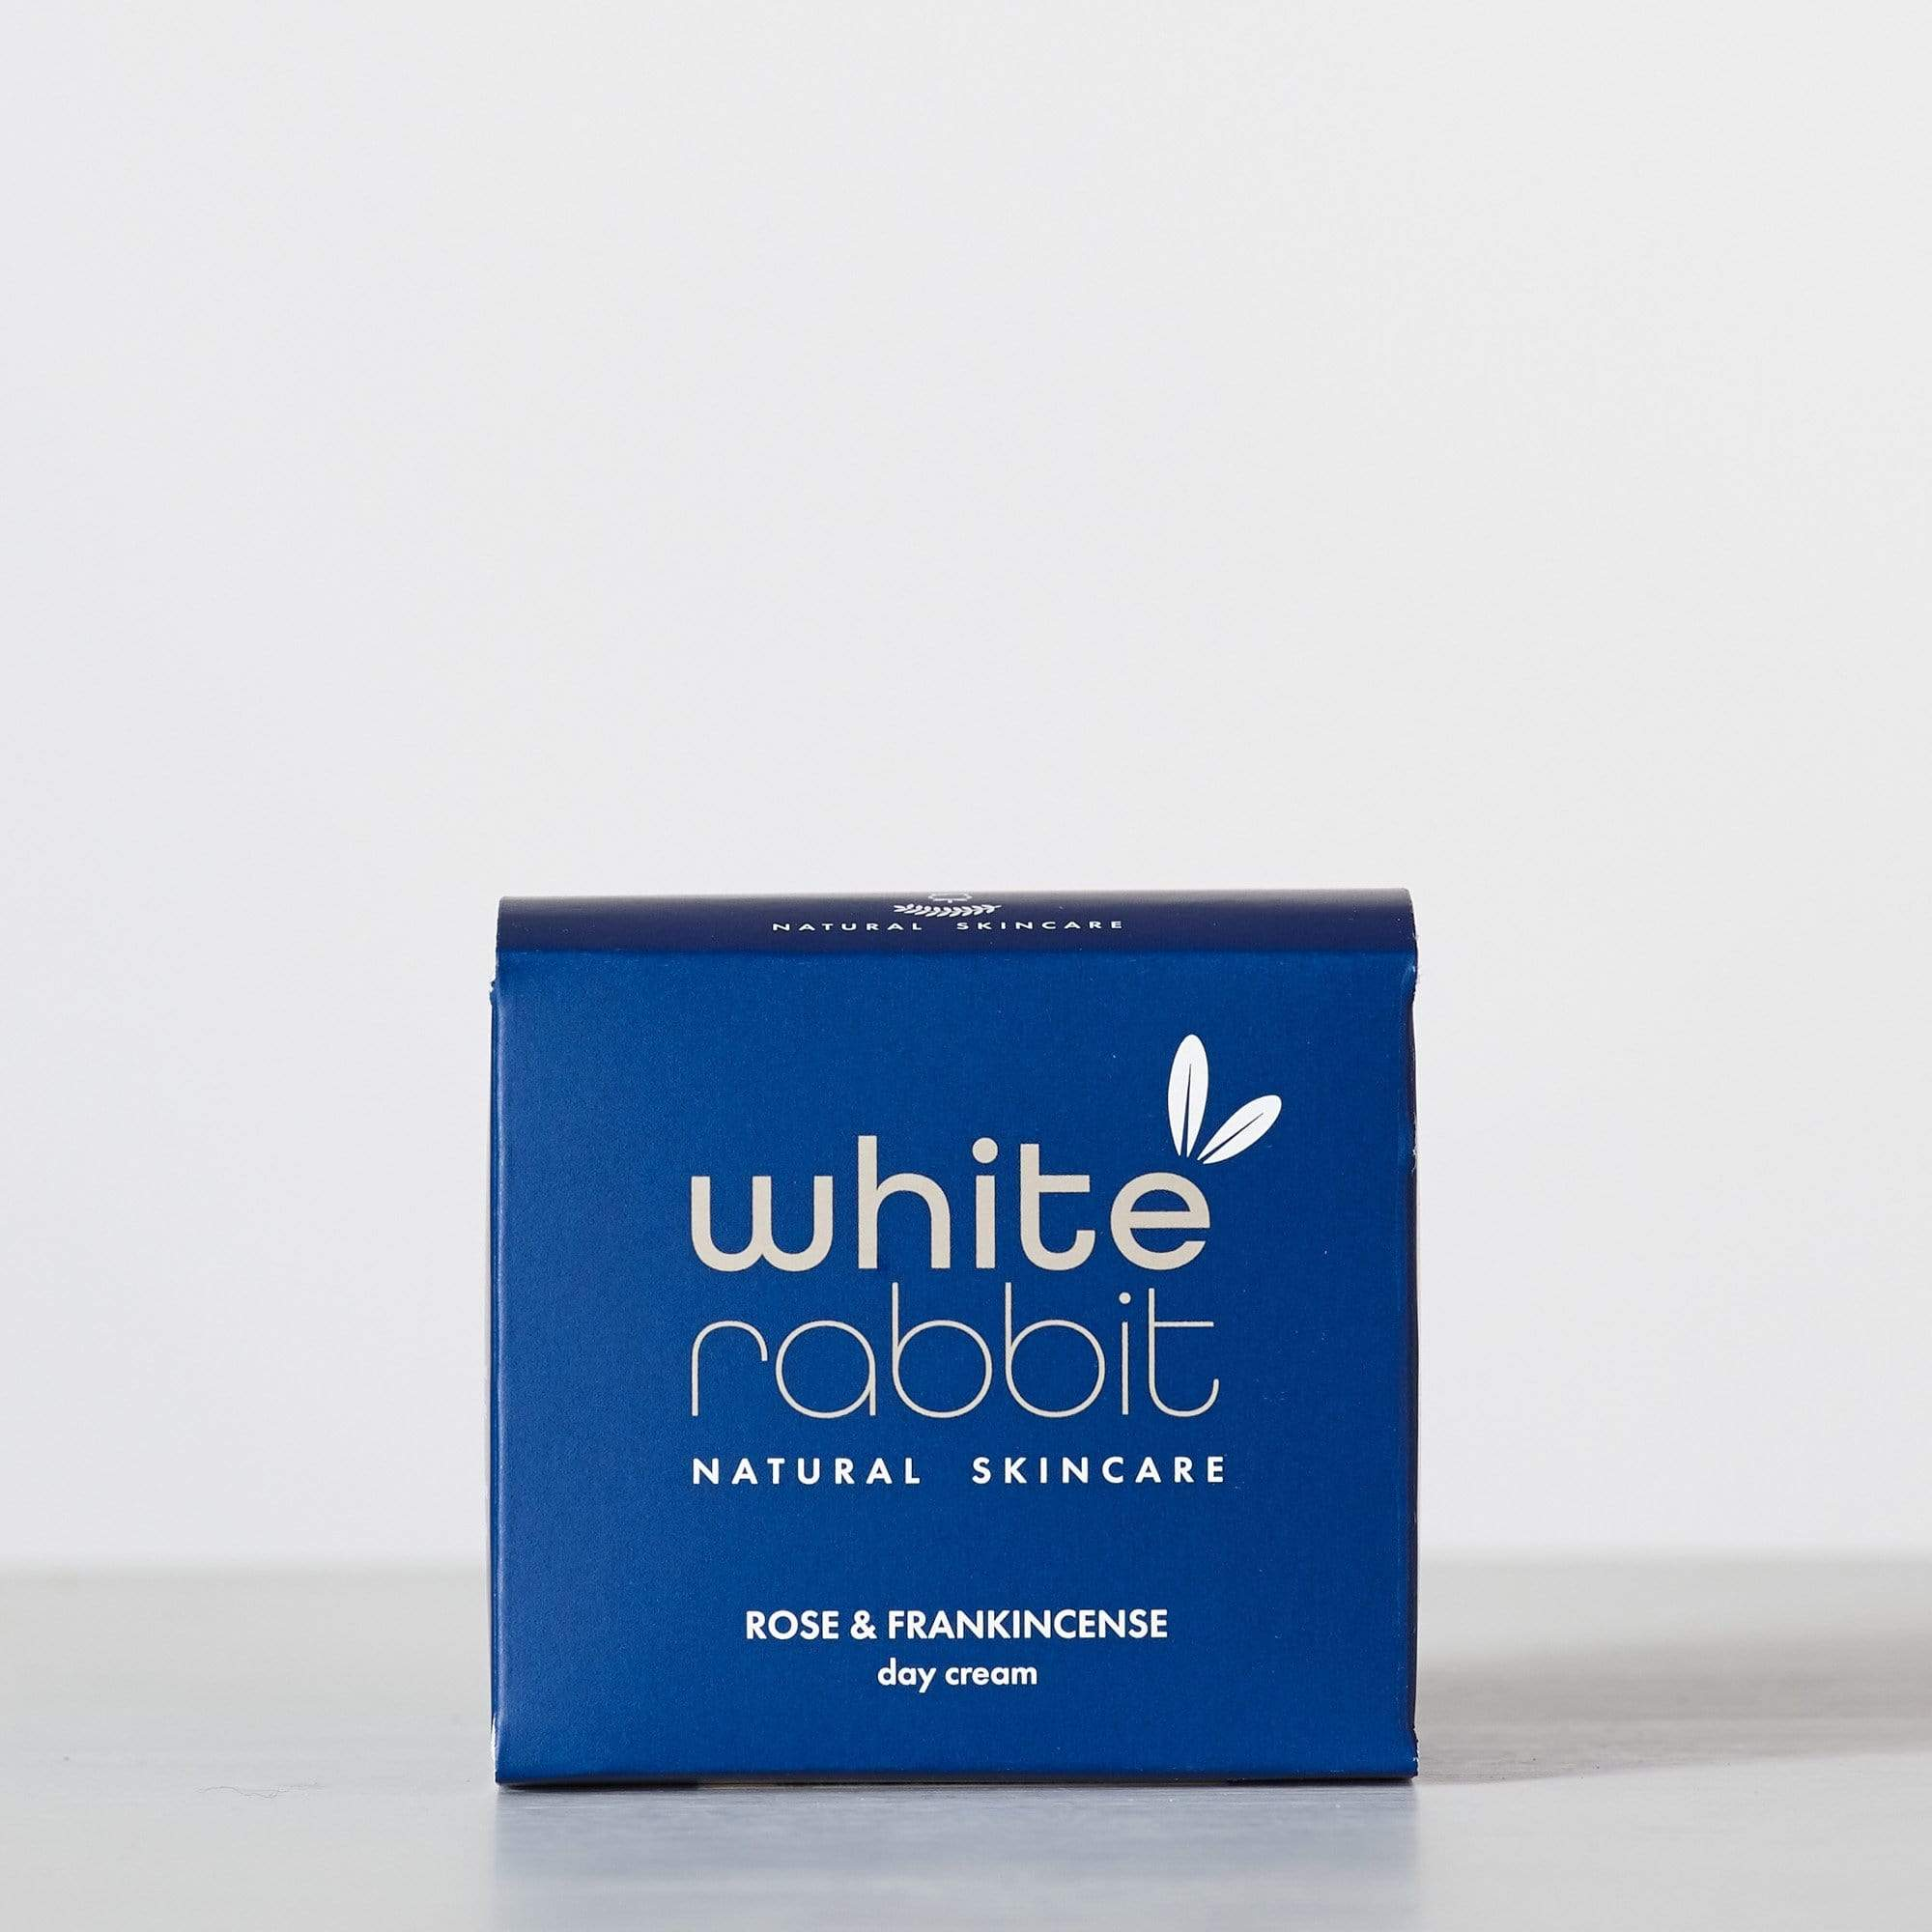 White Rabbit Rose & Frankincense Day Cream